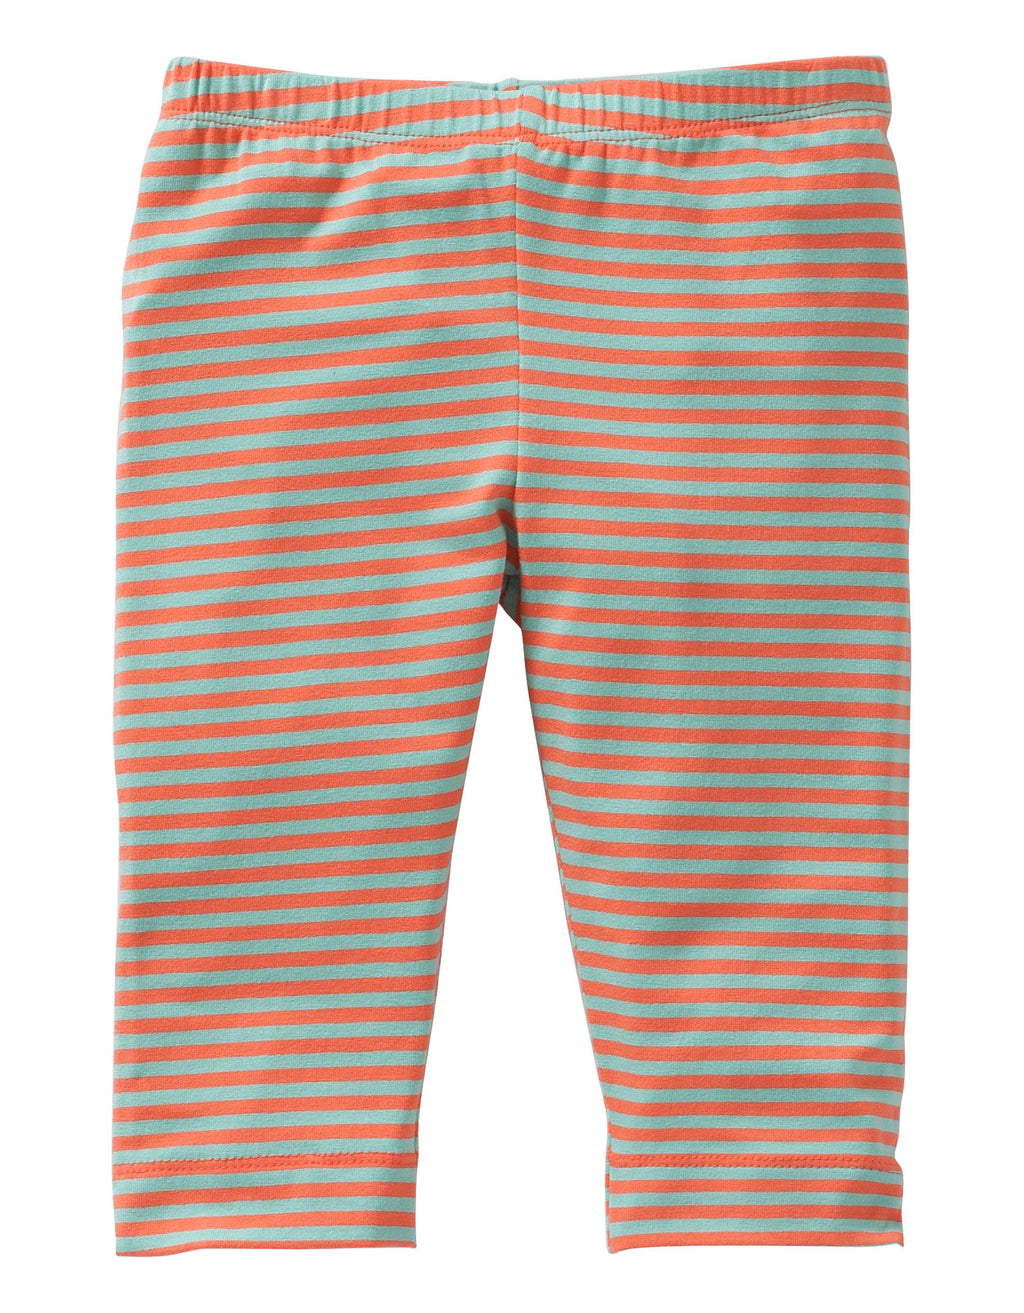 SS16 Oilily Girls Tuppy Capri Leggings 19 Striped